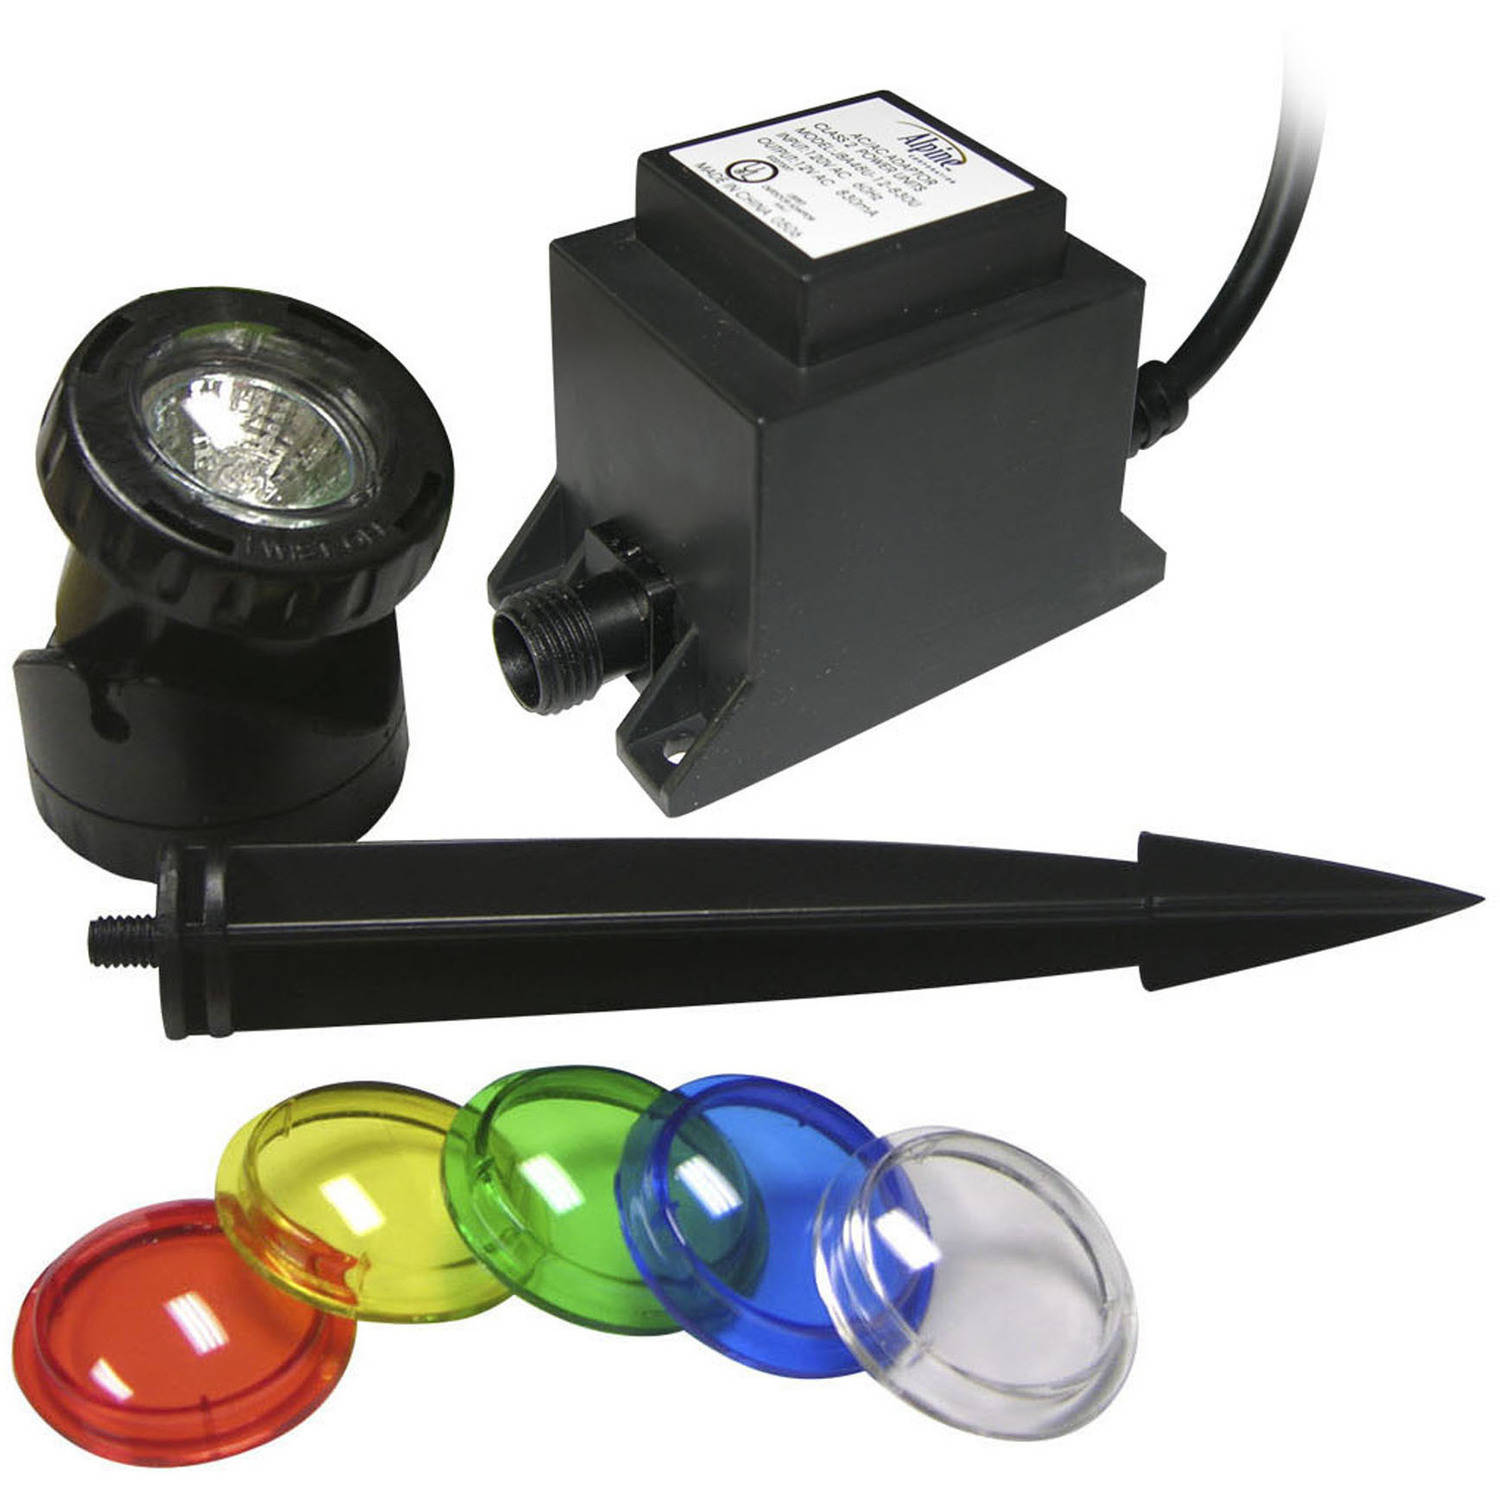 Power Beam 10W Light with Transformer, 23' Cord and Color Lenses